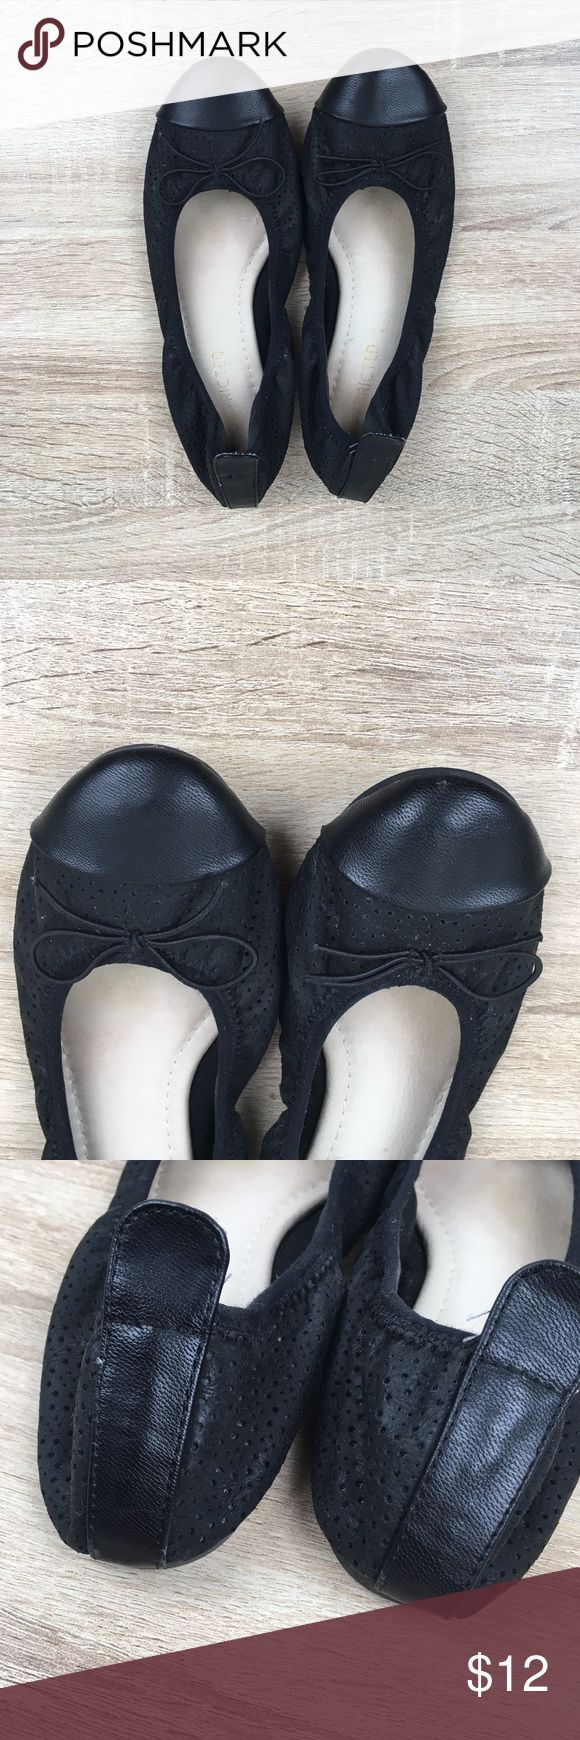 Restricted Ballet Flats Good used condition Restricted ballet flats. Size has rubbed off but they fit like a 7. Restricted Shoes Flats & Loafers